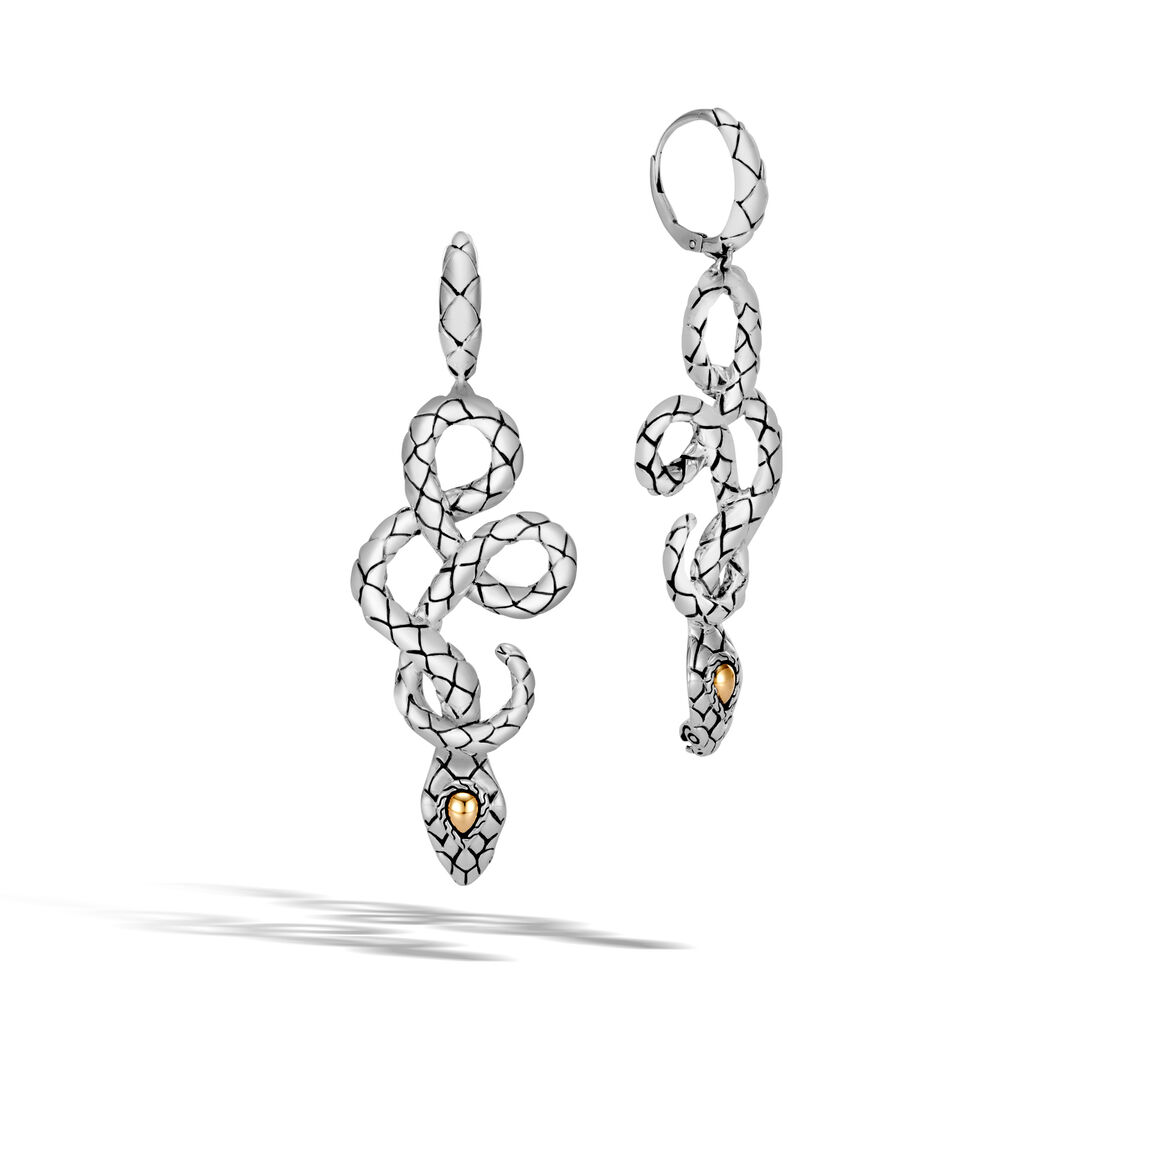 Legends Cobra Drop Earring in Silver and 18K Gold